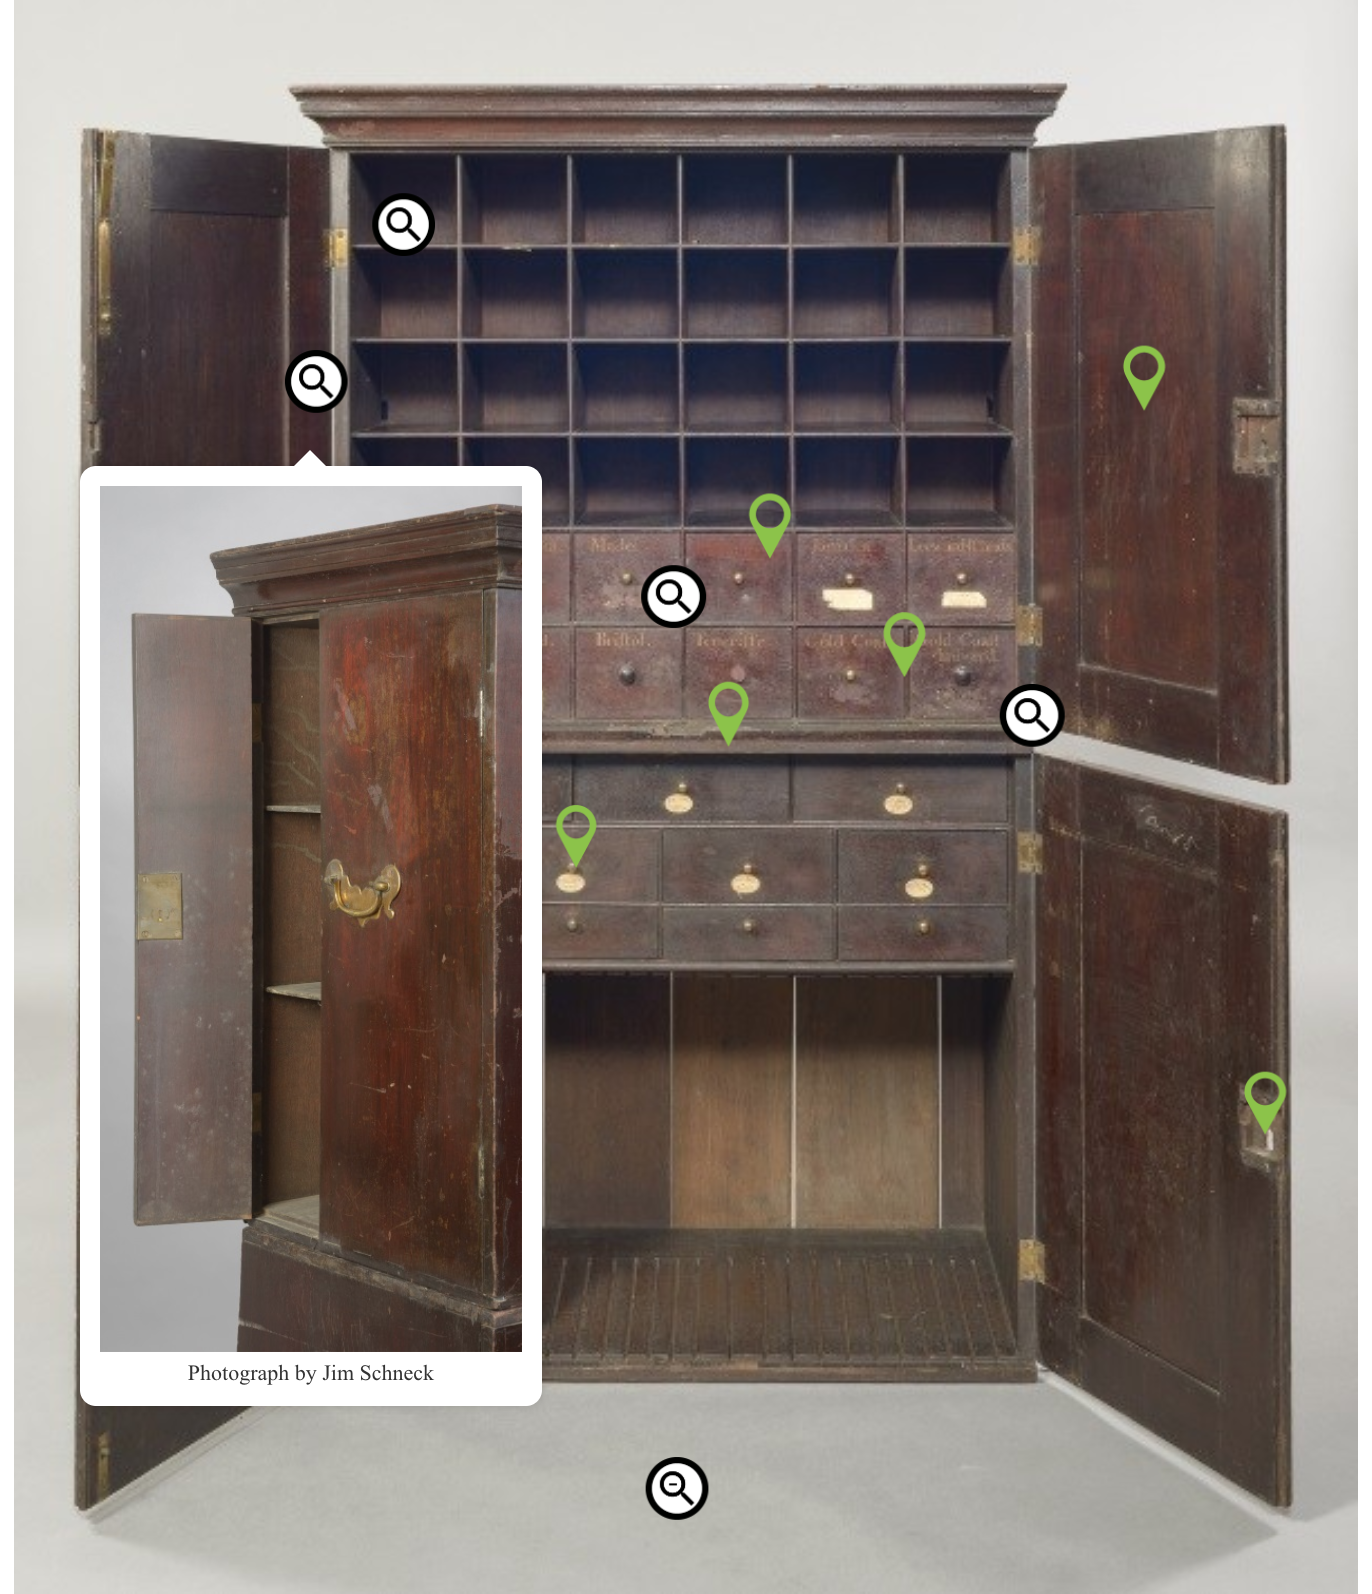 An example of the type of pop-up created by the touch screen interactive of a picture of a side compartment on the cabinet, obscured when the cabinet's doors are fully open.